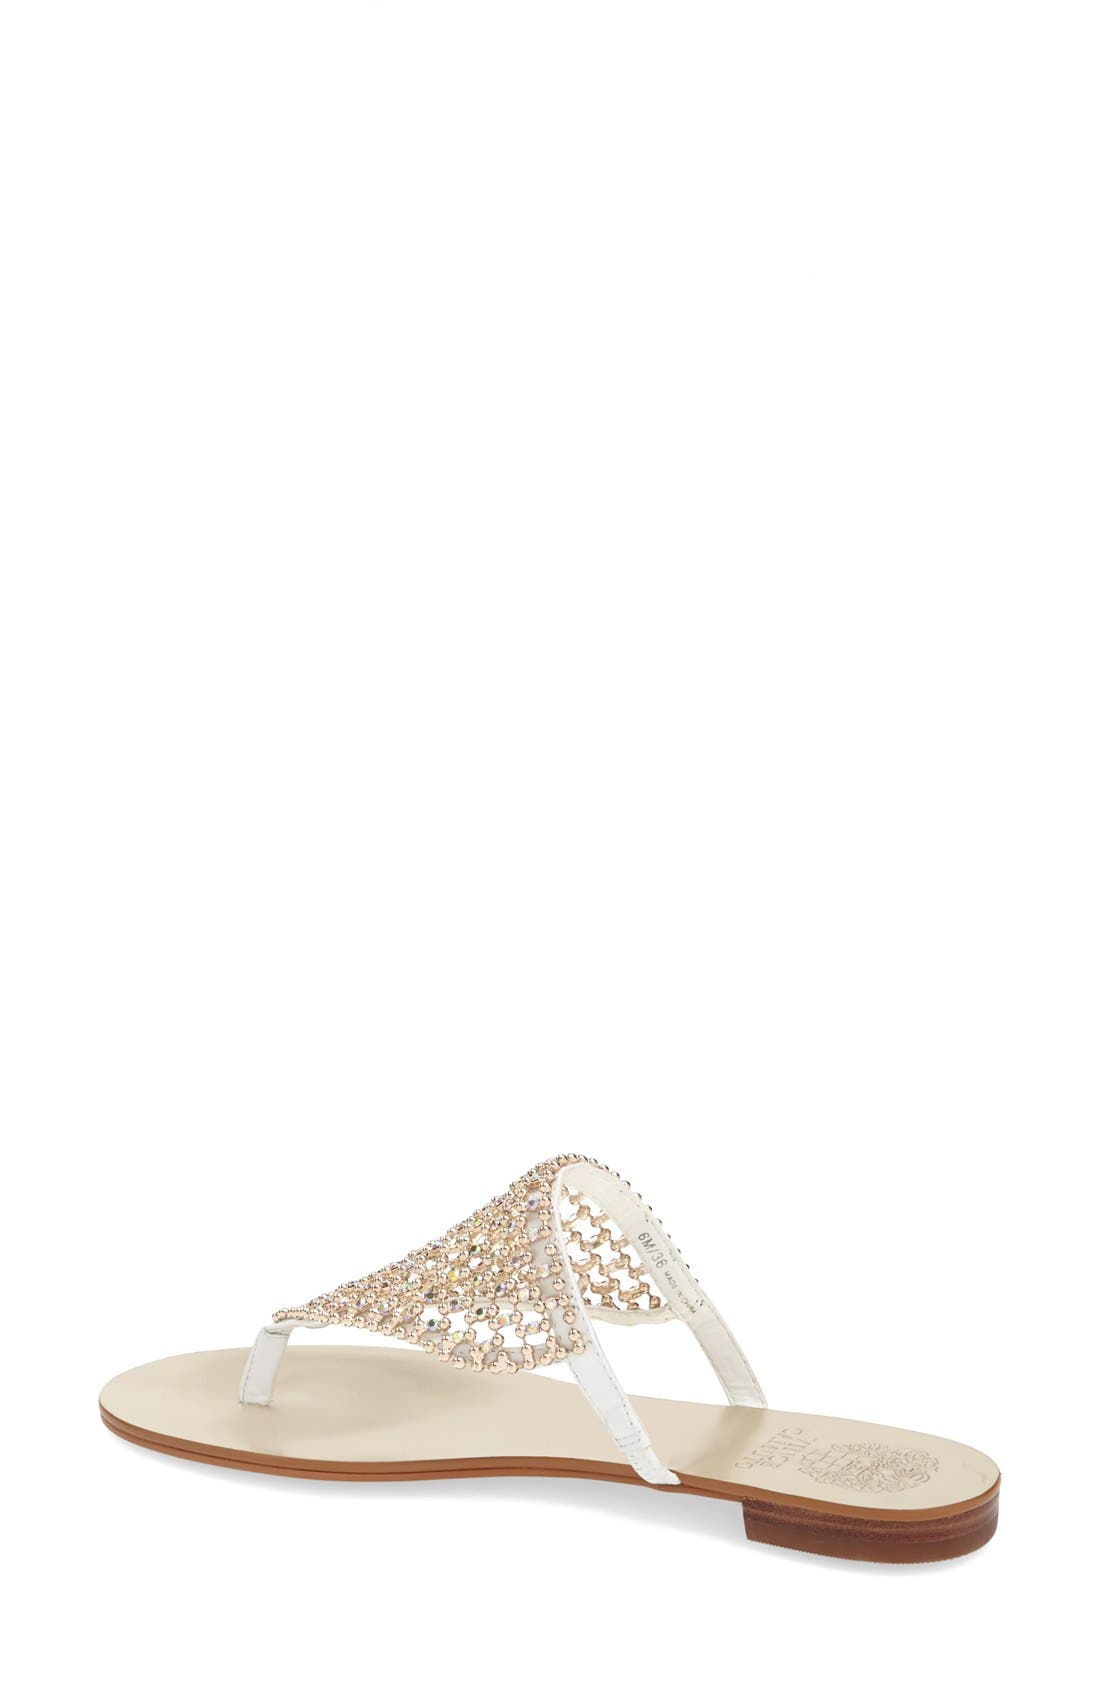 Alternate Image 2  - Vince Camuto 'Mombo' Embellished Thong Sandal (Women)